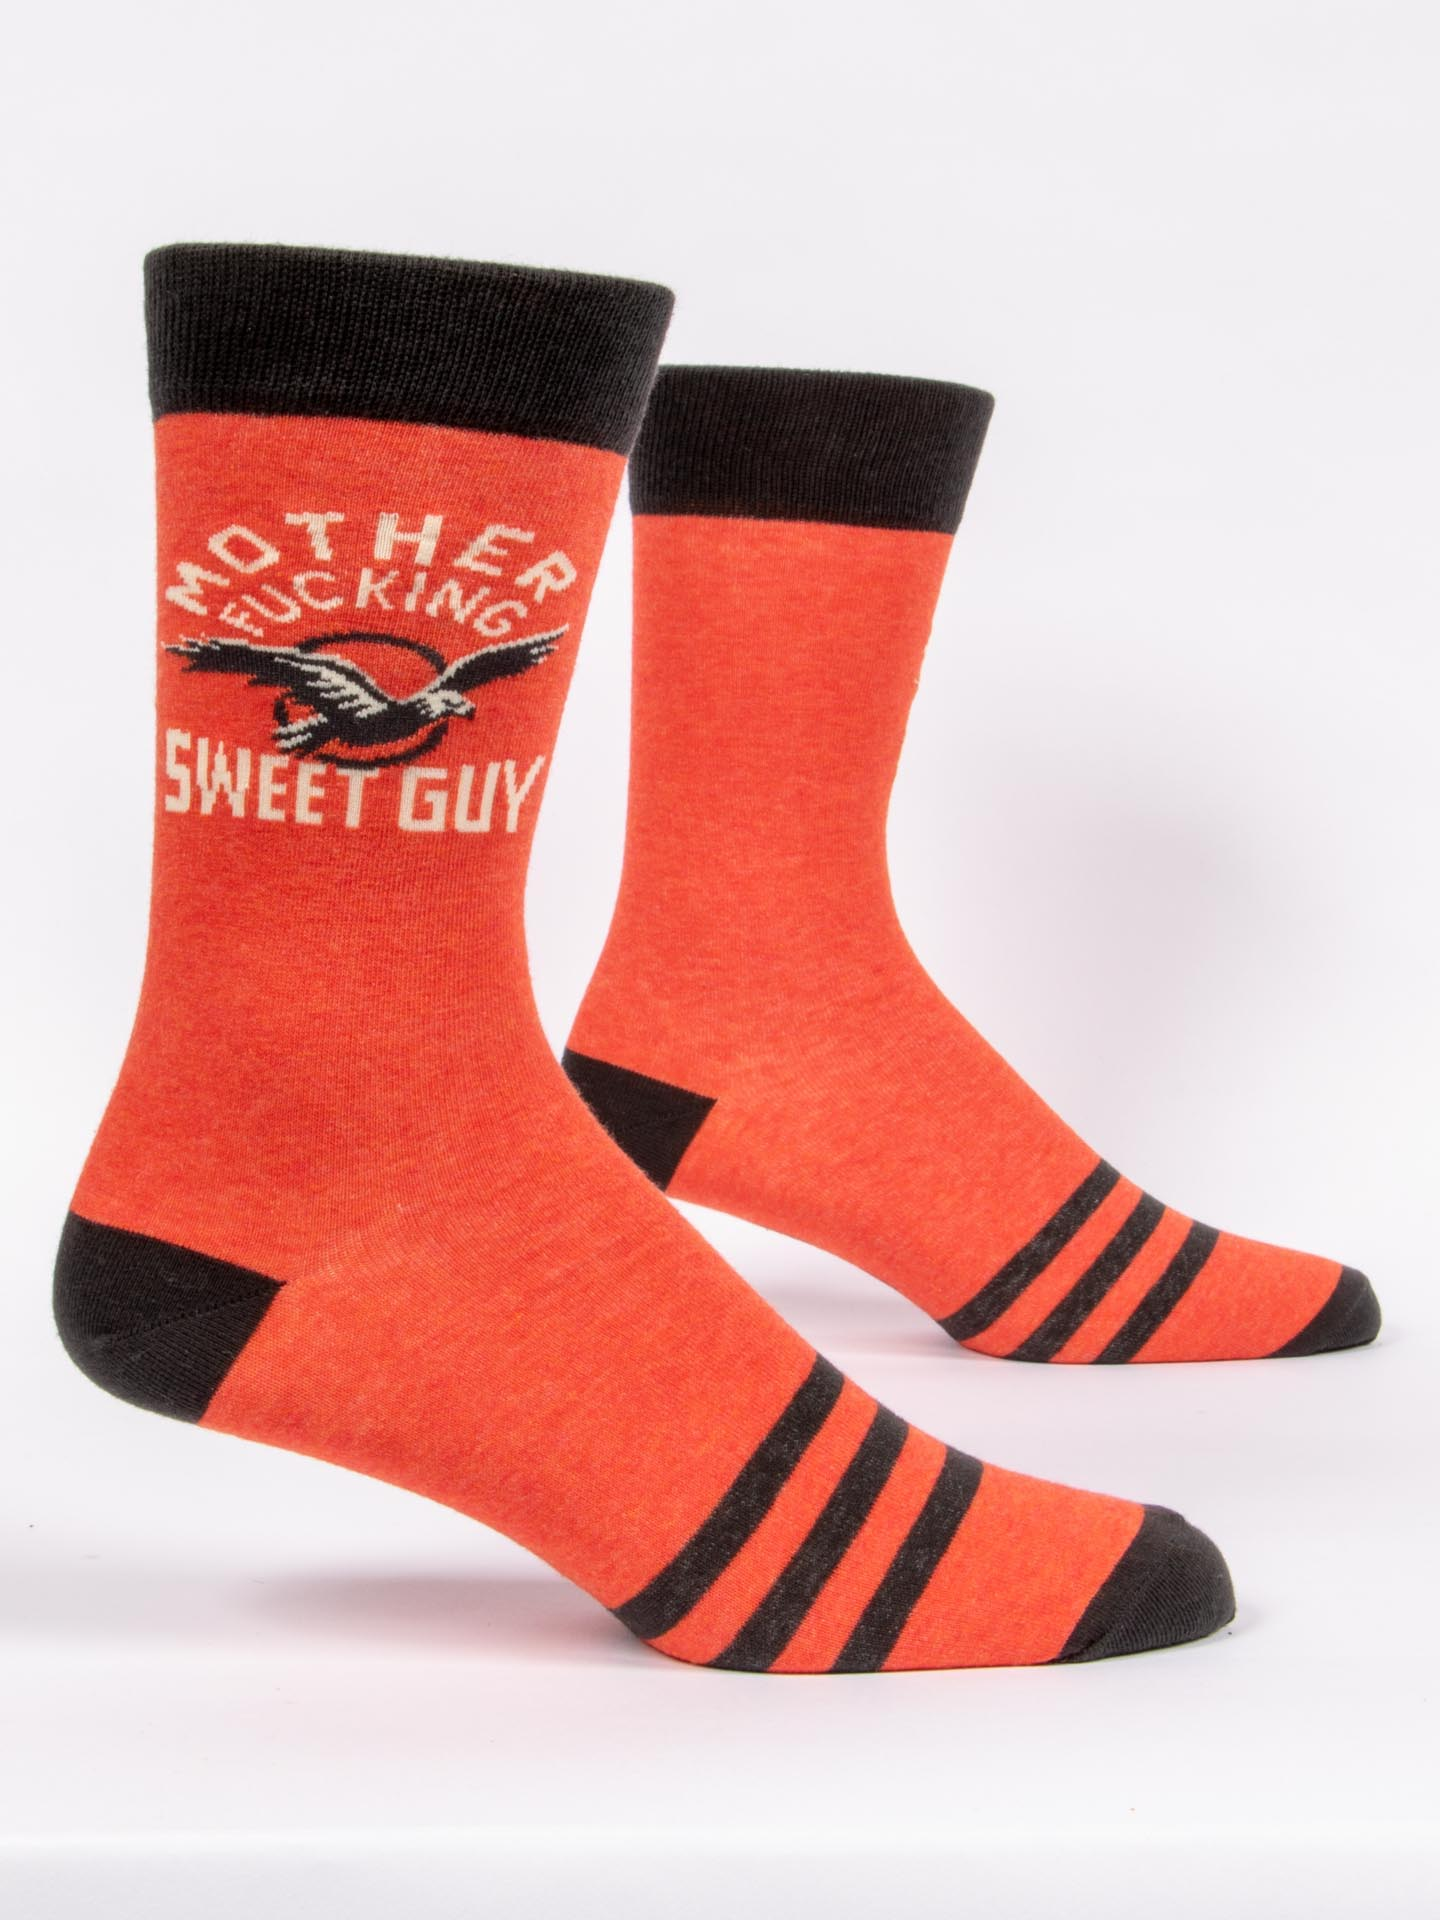 Blue Q Men's Socks | Sweet Guy